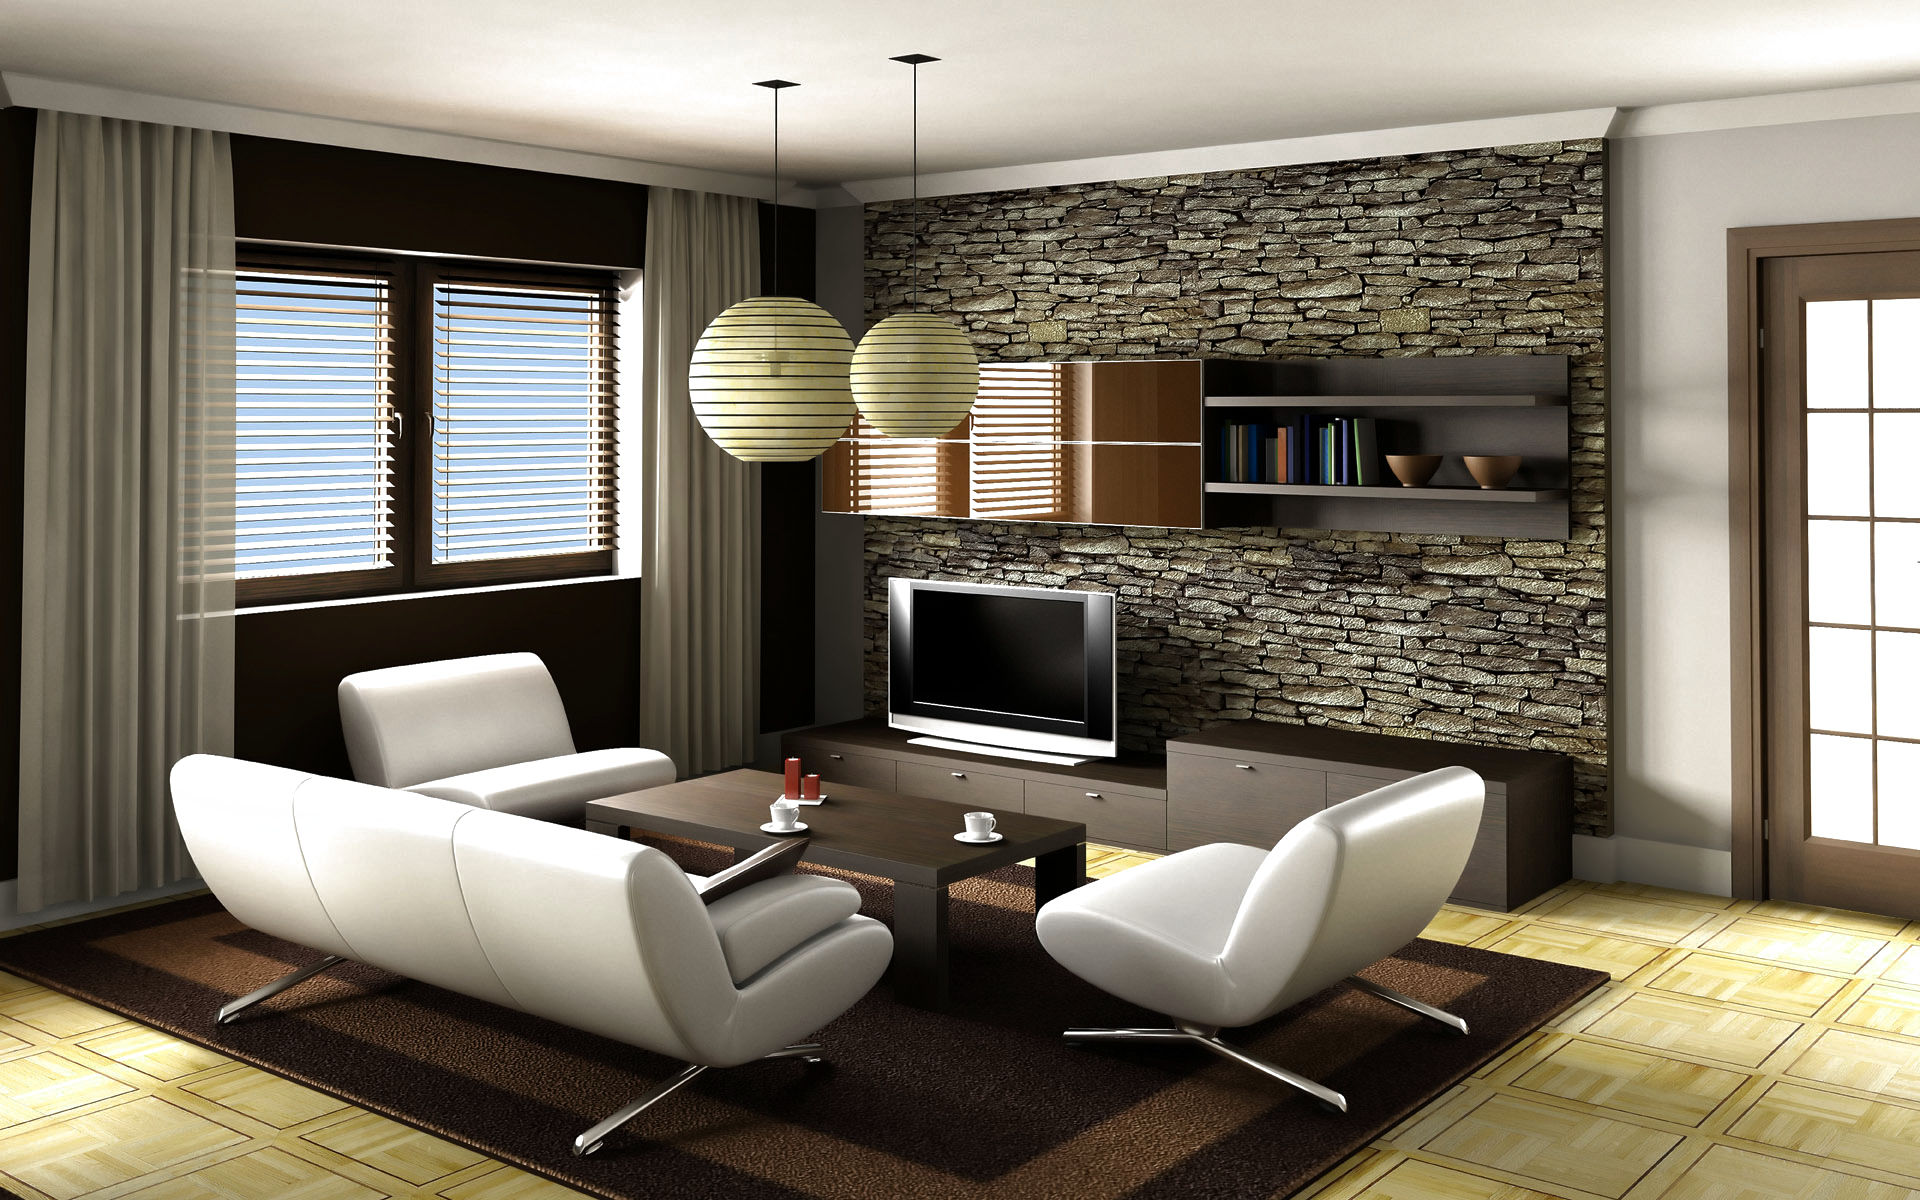 16 modern living room furniture ideas design hgnv com for Drawing room furniture design ideas